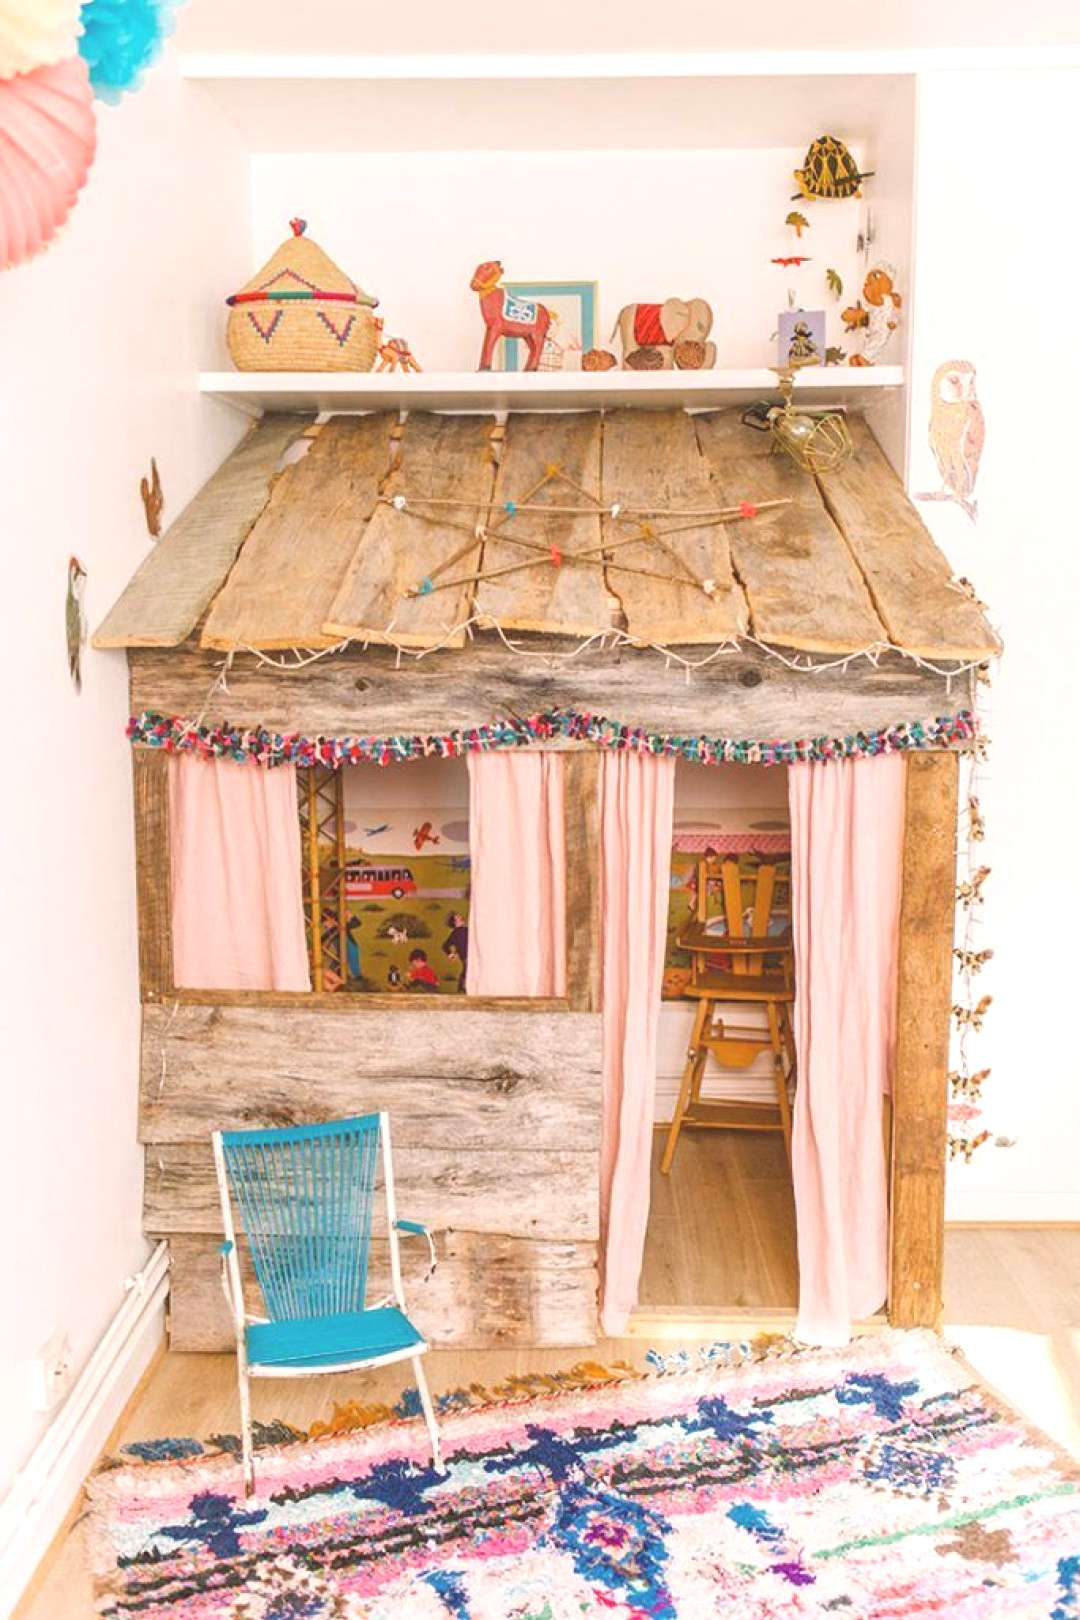 What's your of an awesome Creative Space for your kids? Sharing some amazing and imaginative Crea